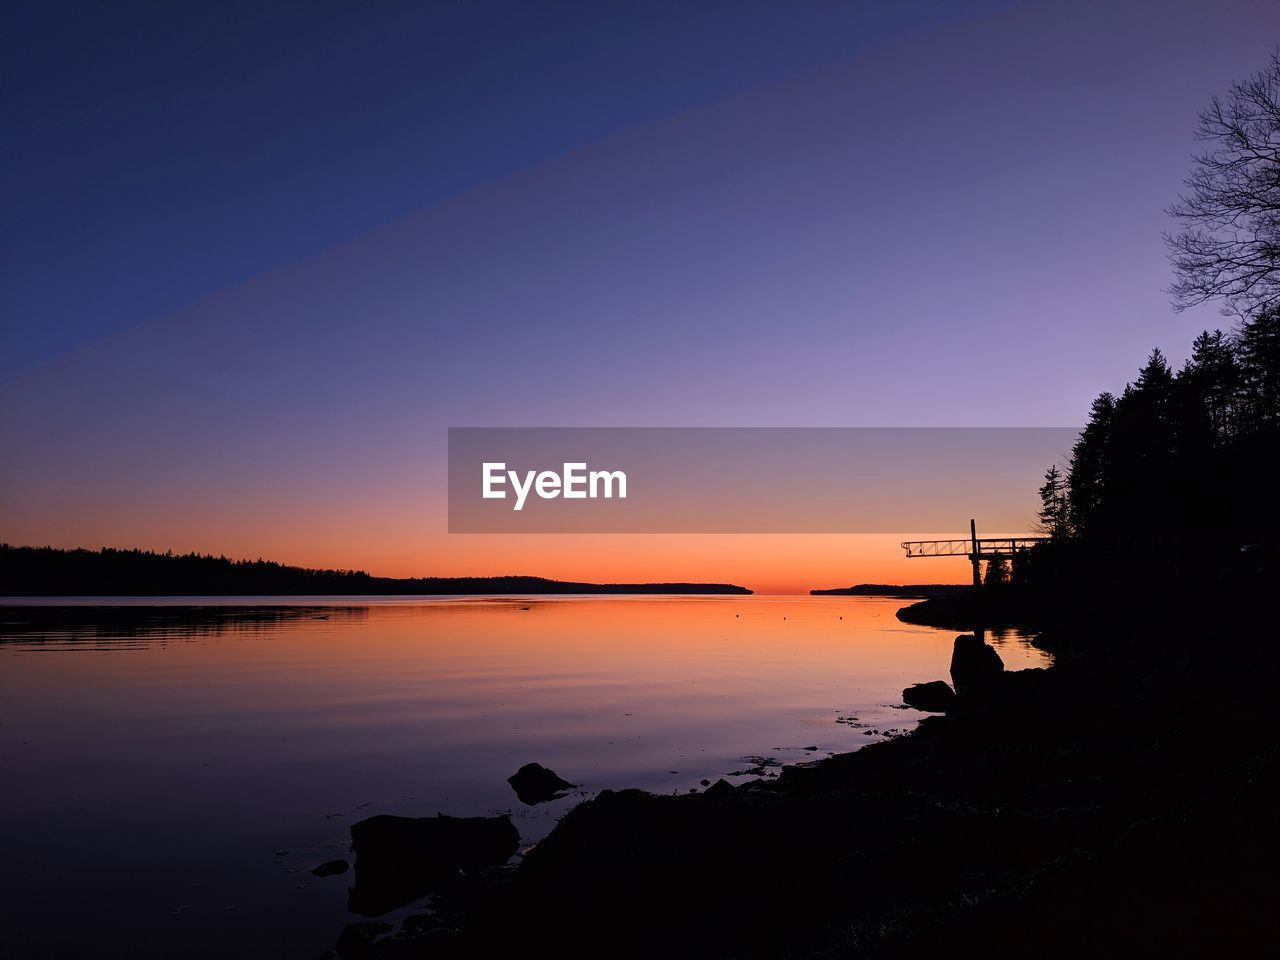 sky, water, sunset, silhouette, beauty in nature, scenics - nature, orange color, tranquil scene, tranquility, nature, lake, tree, idyllic, plant, copy space, non-urban scene, reflection, no people, outdoors